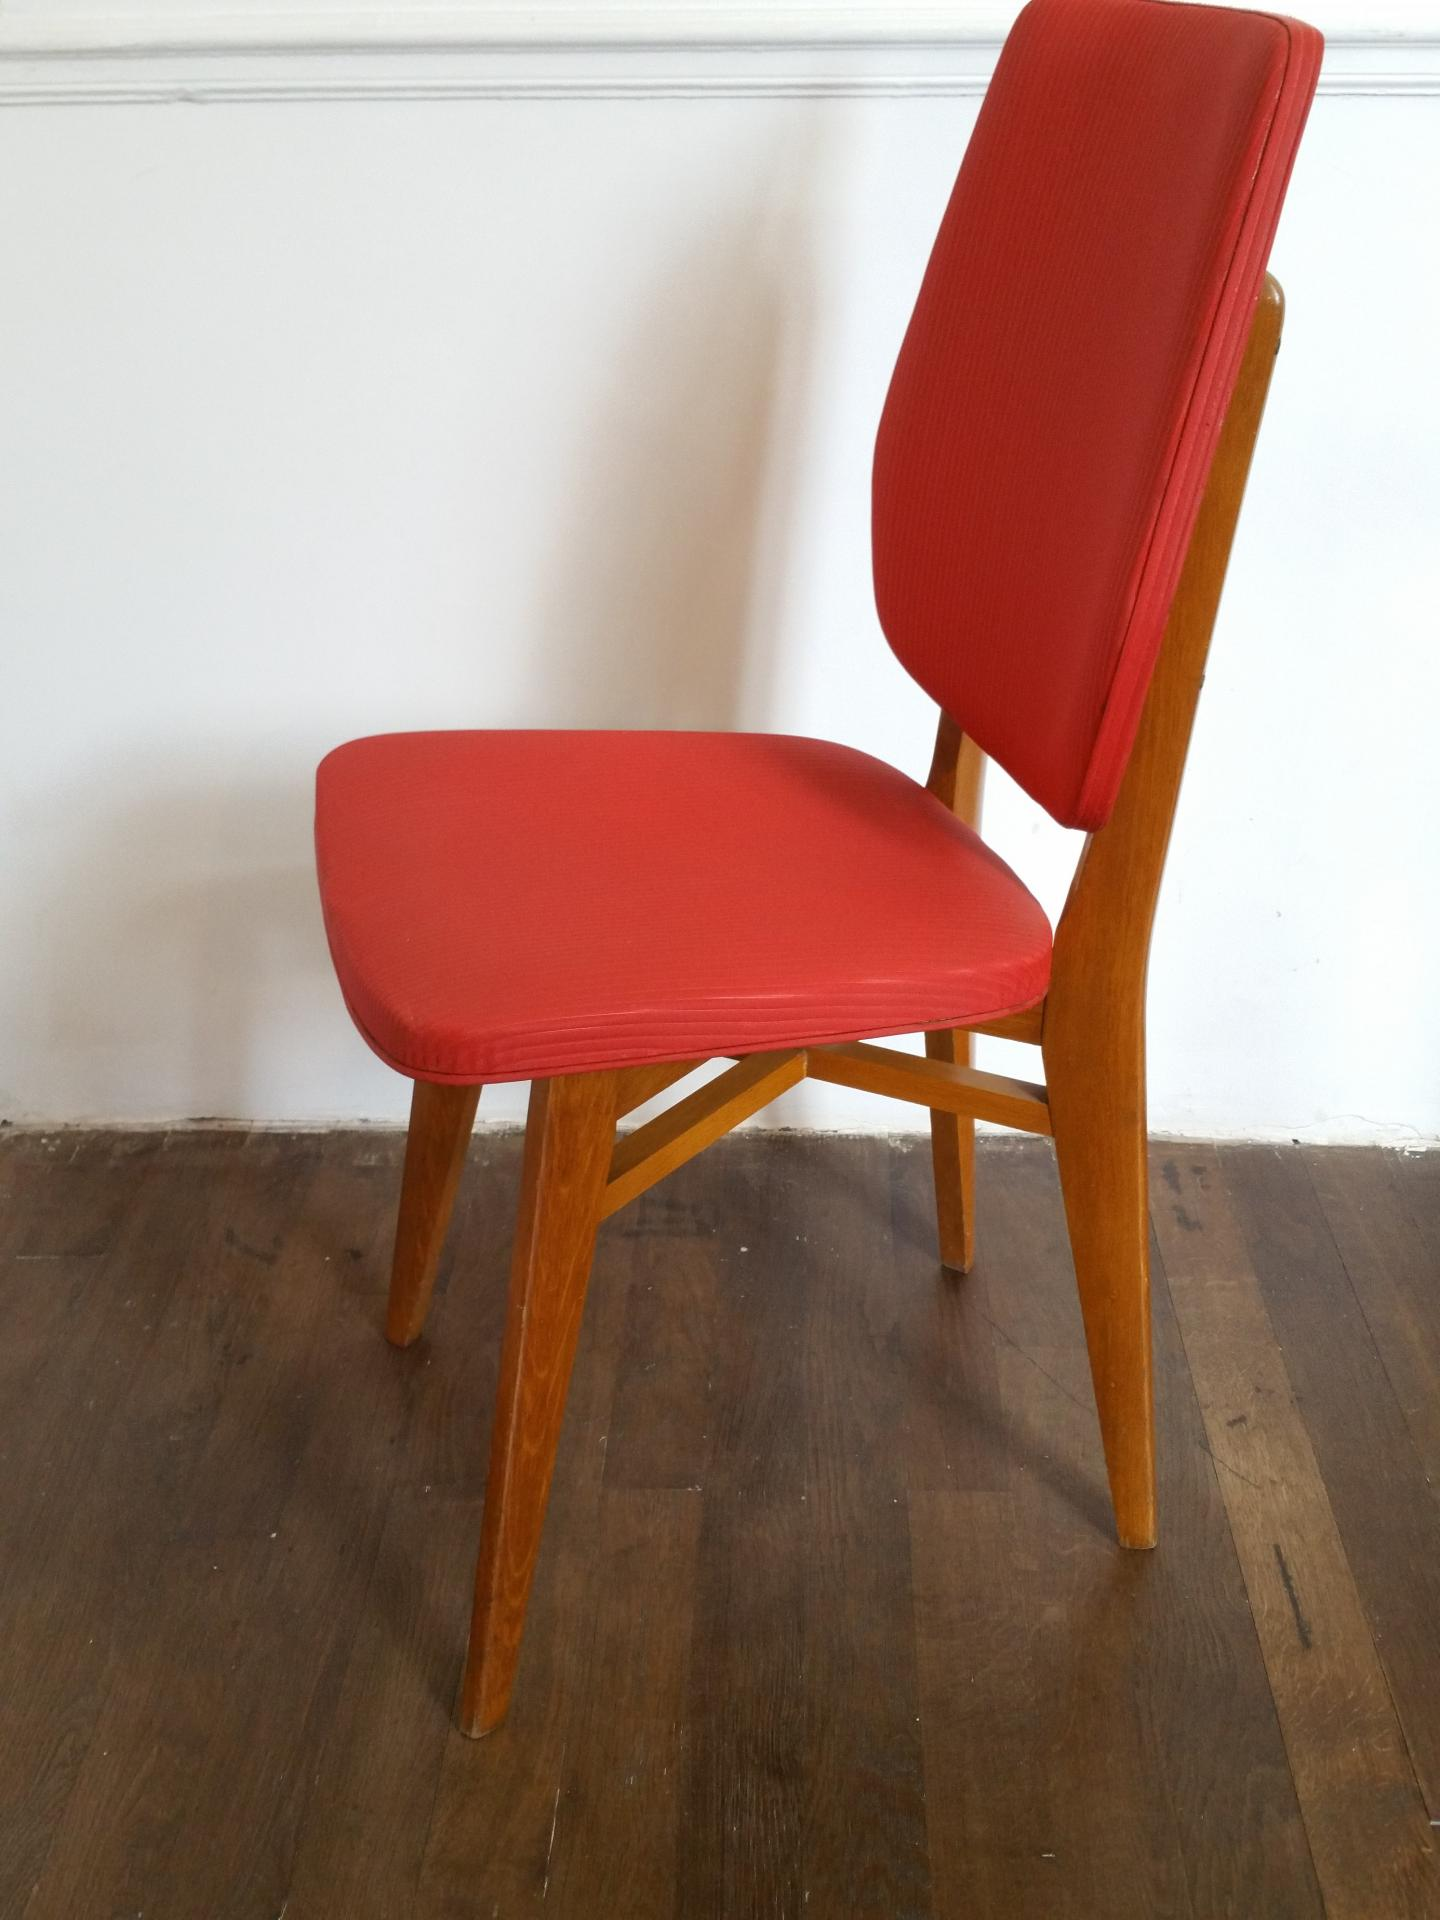 3 chaise rouge